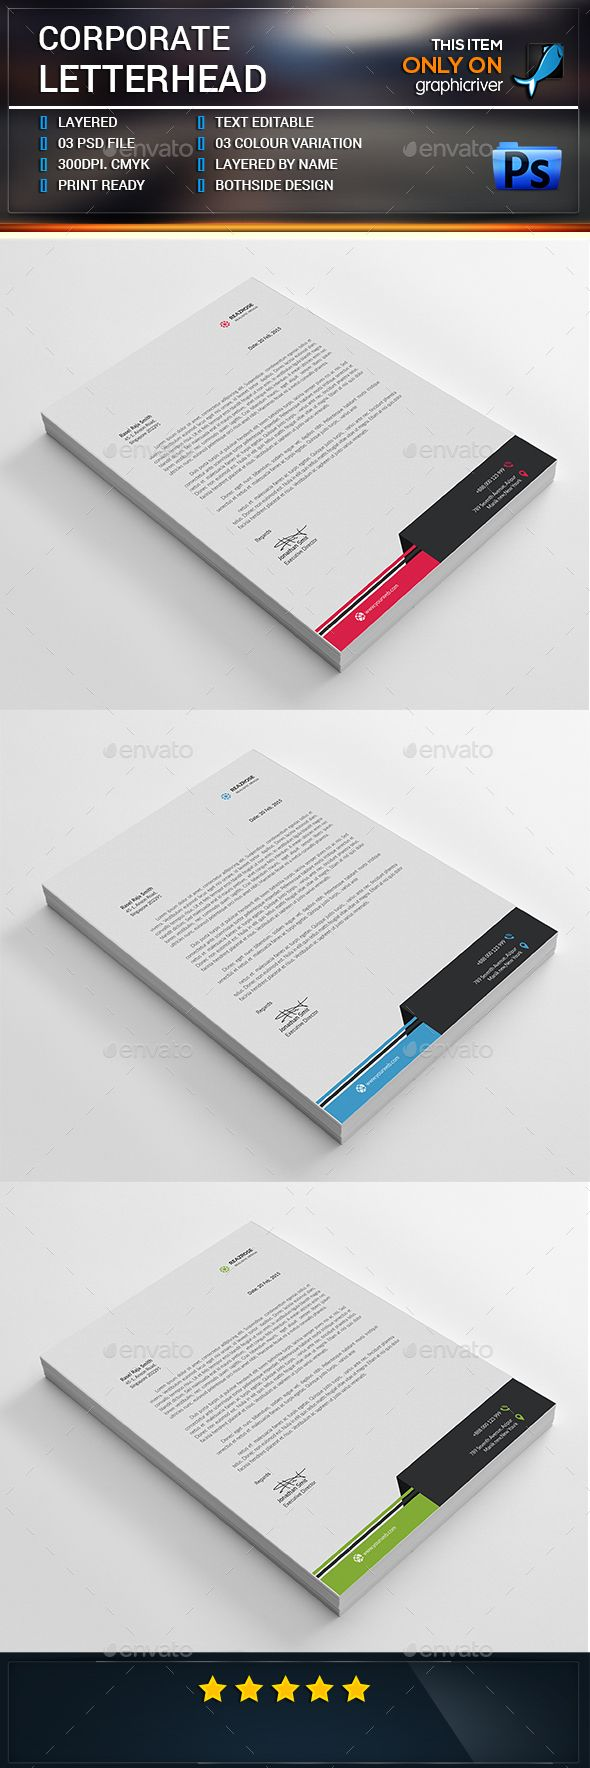 Corporate Letterhead Stationery Print Templates Download